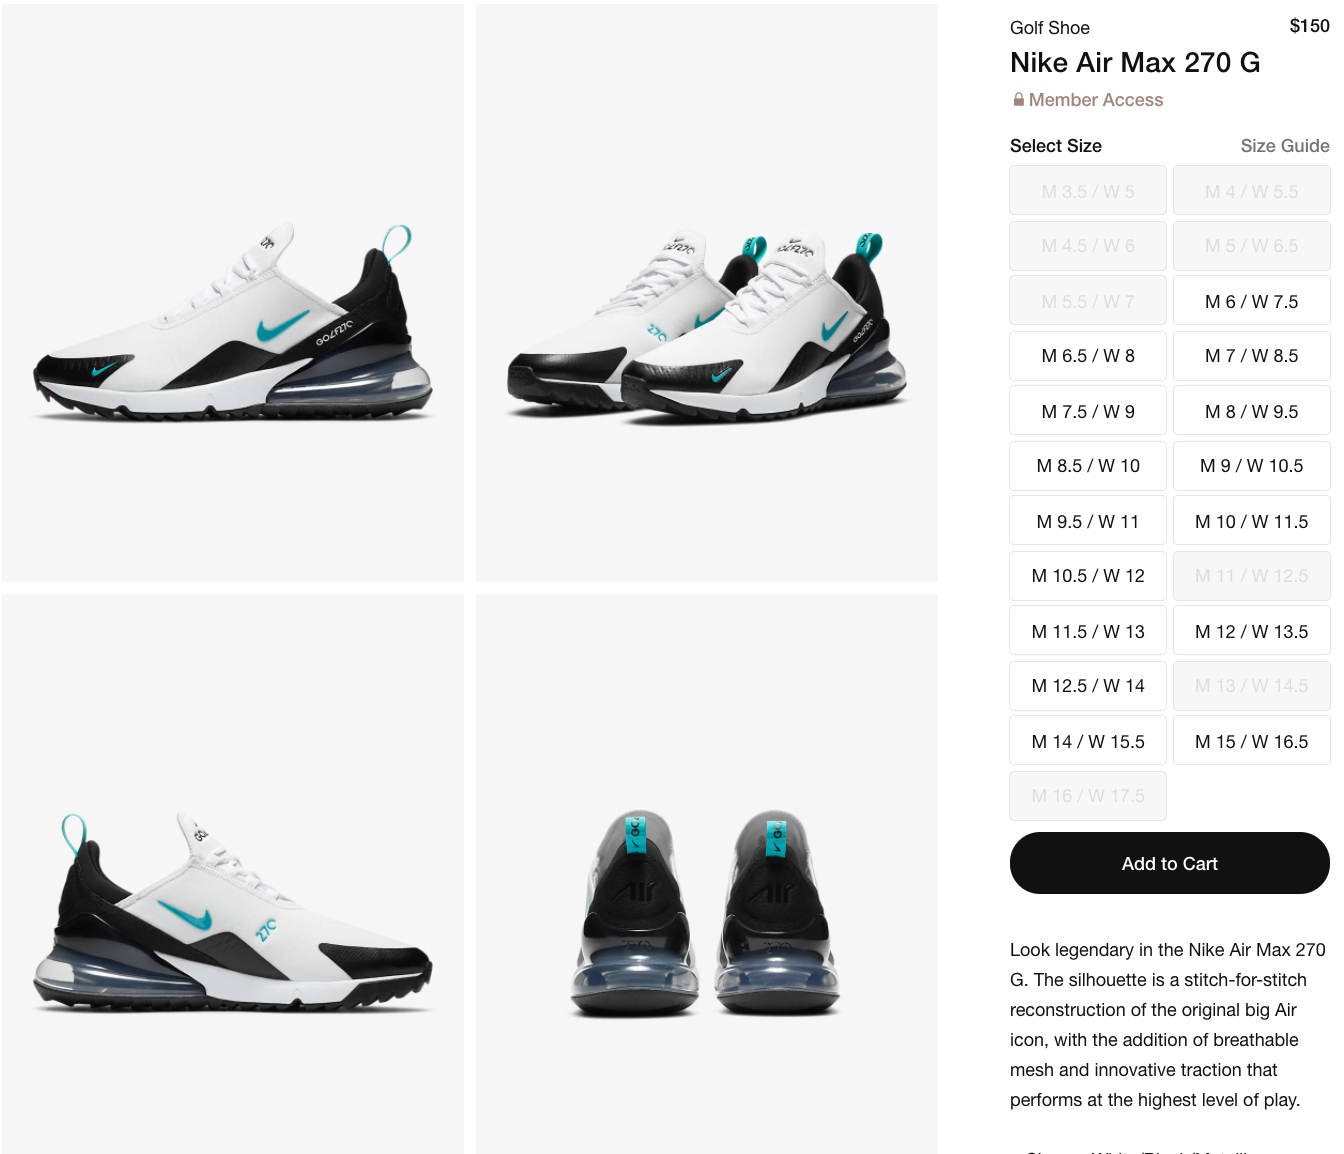 Sole Links On Twitter Ad Restock Nike Air Max 270 G Dusty Cactus Https T Co Njeitubgbq Https T Co Njeitubgbq